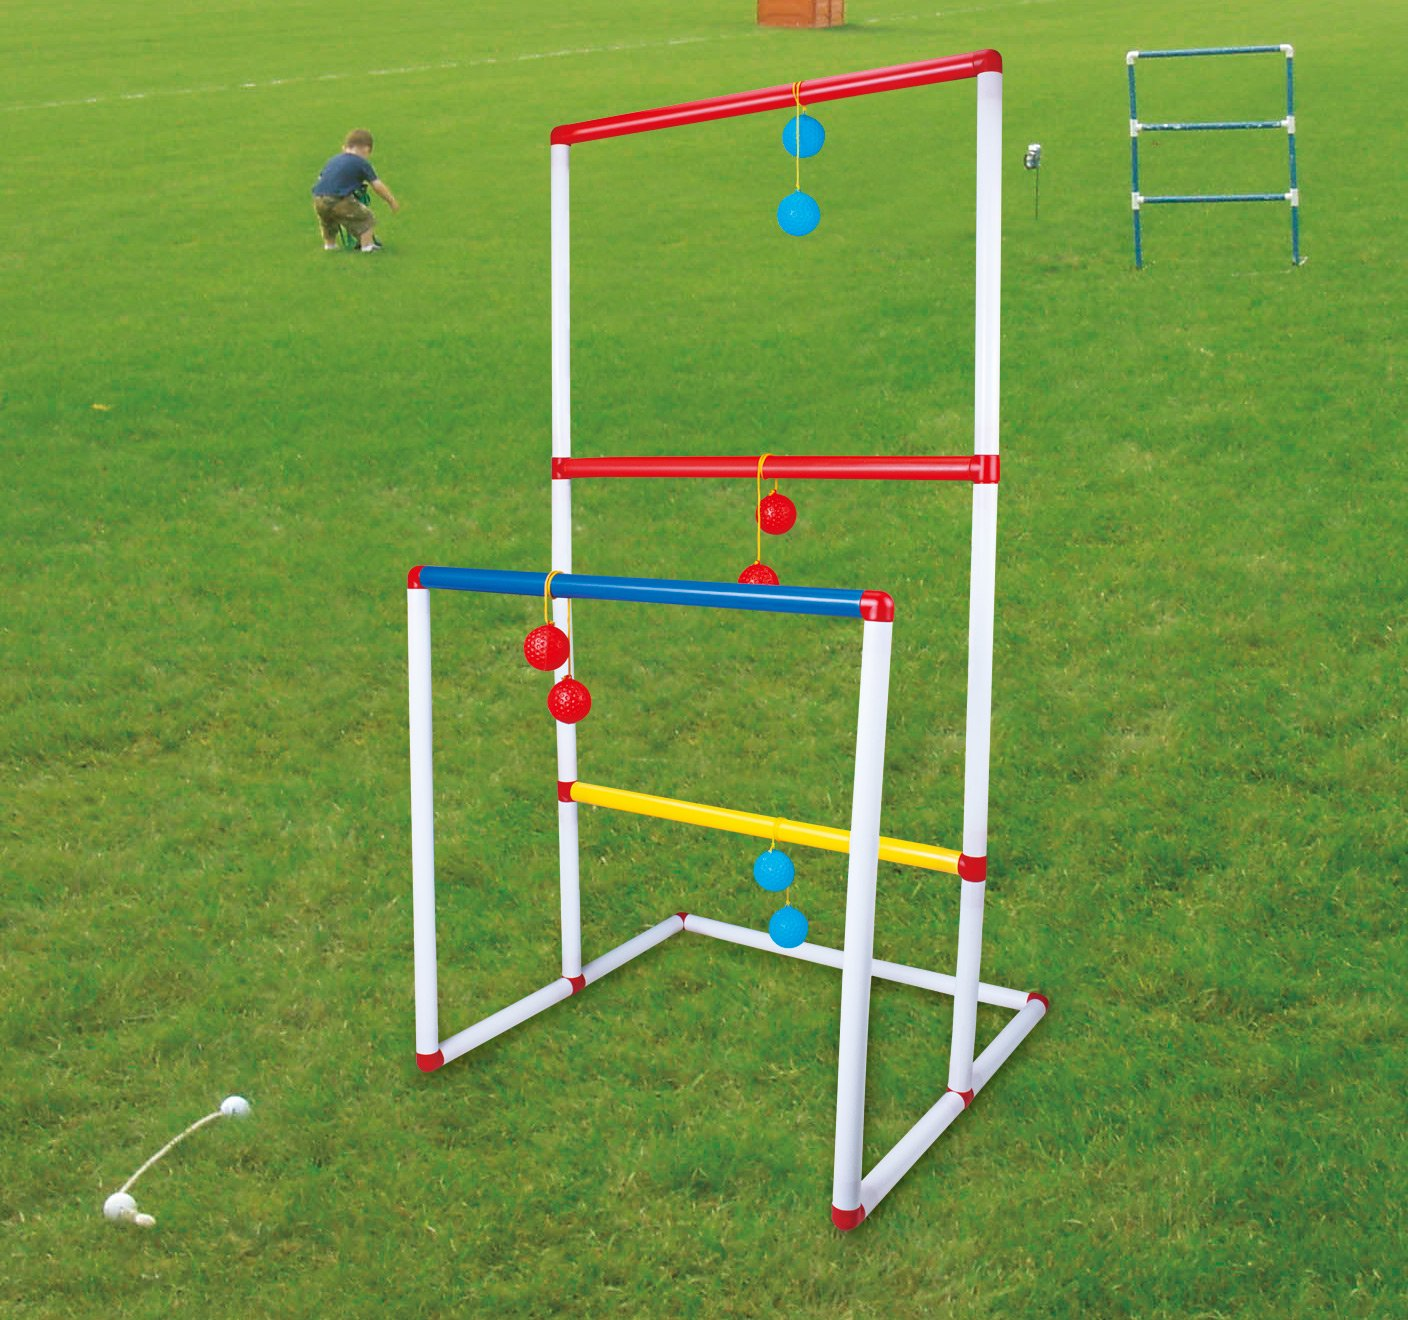 Lightjust Ladder Toss Game Set, Ladderball Game Set with 6 Bolos for Indoor or Outdoor by Lightjust